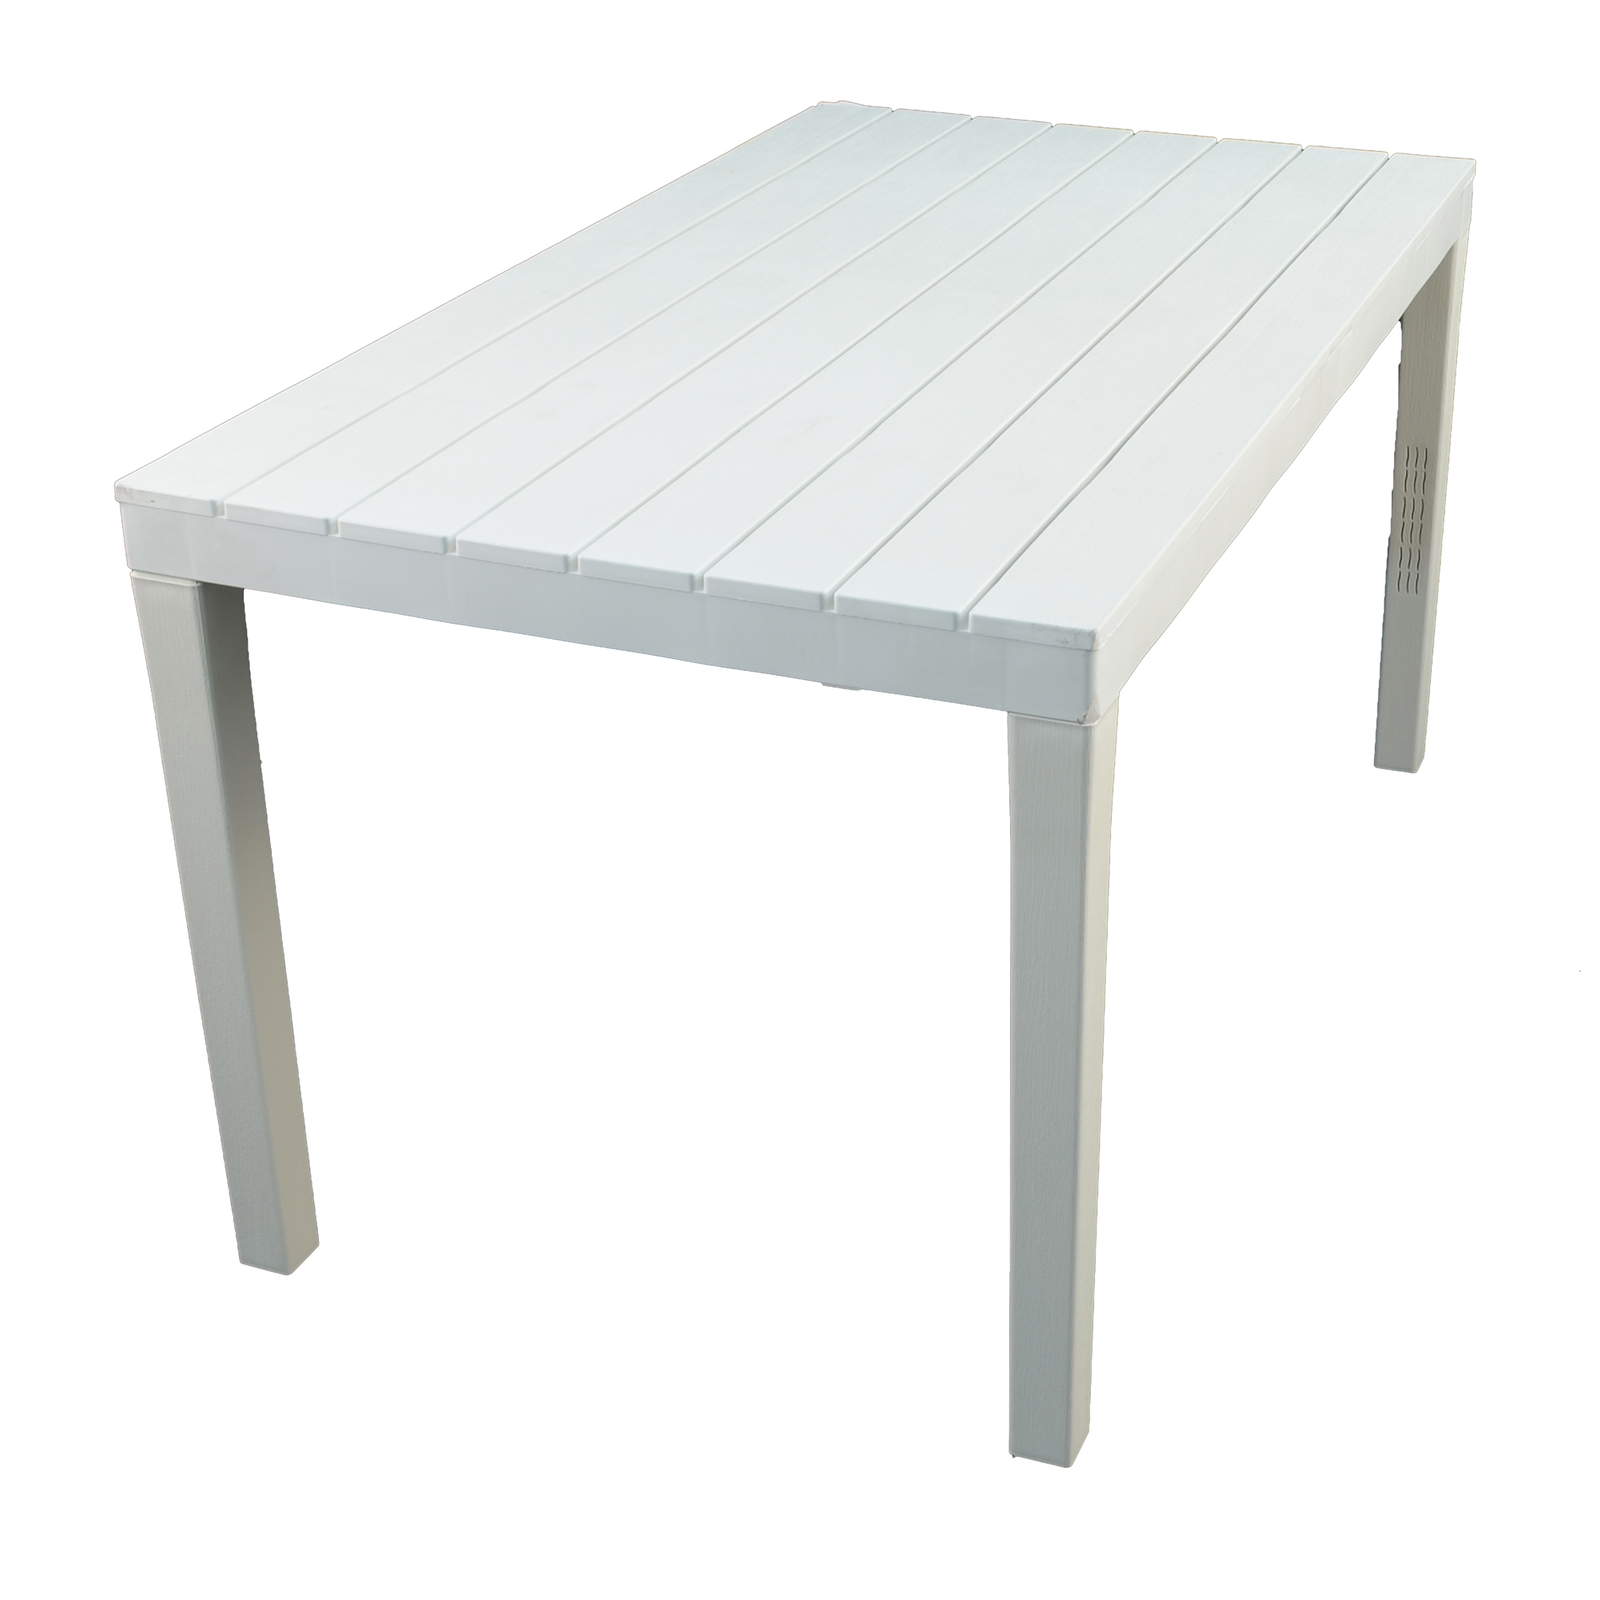 Trabella Roma Rectangular Table White